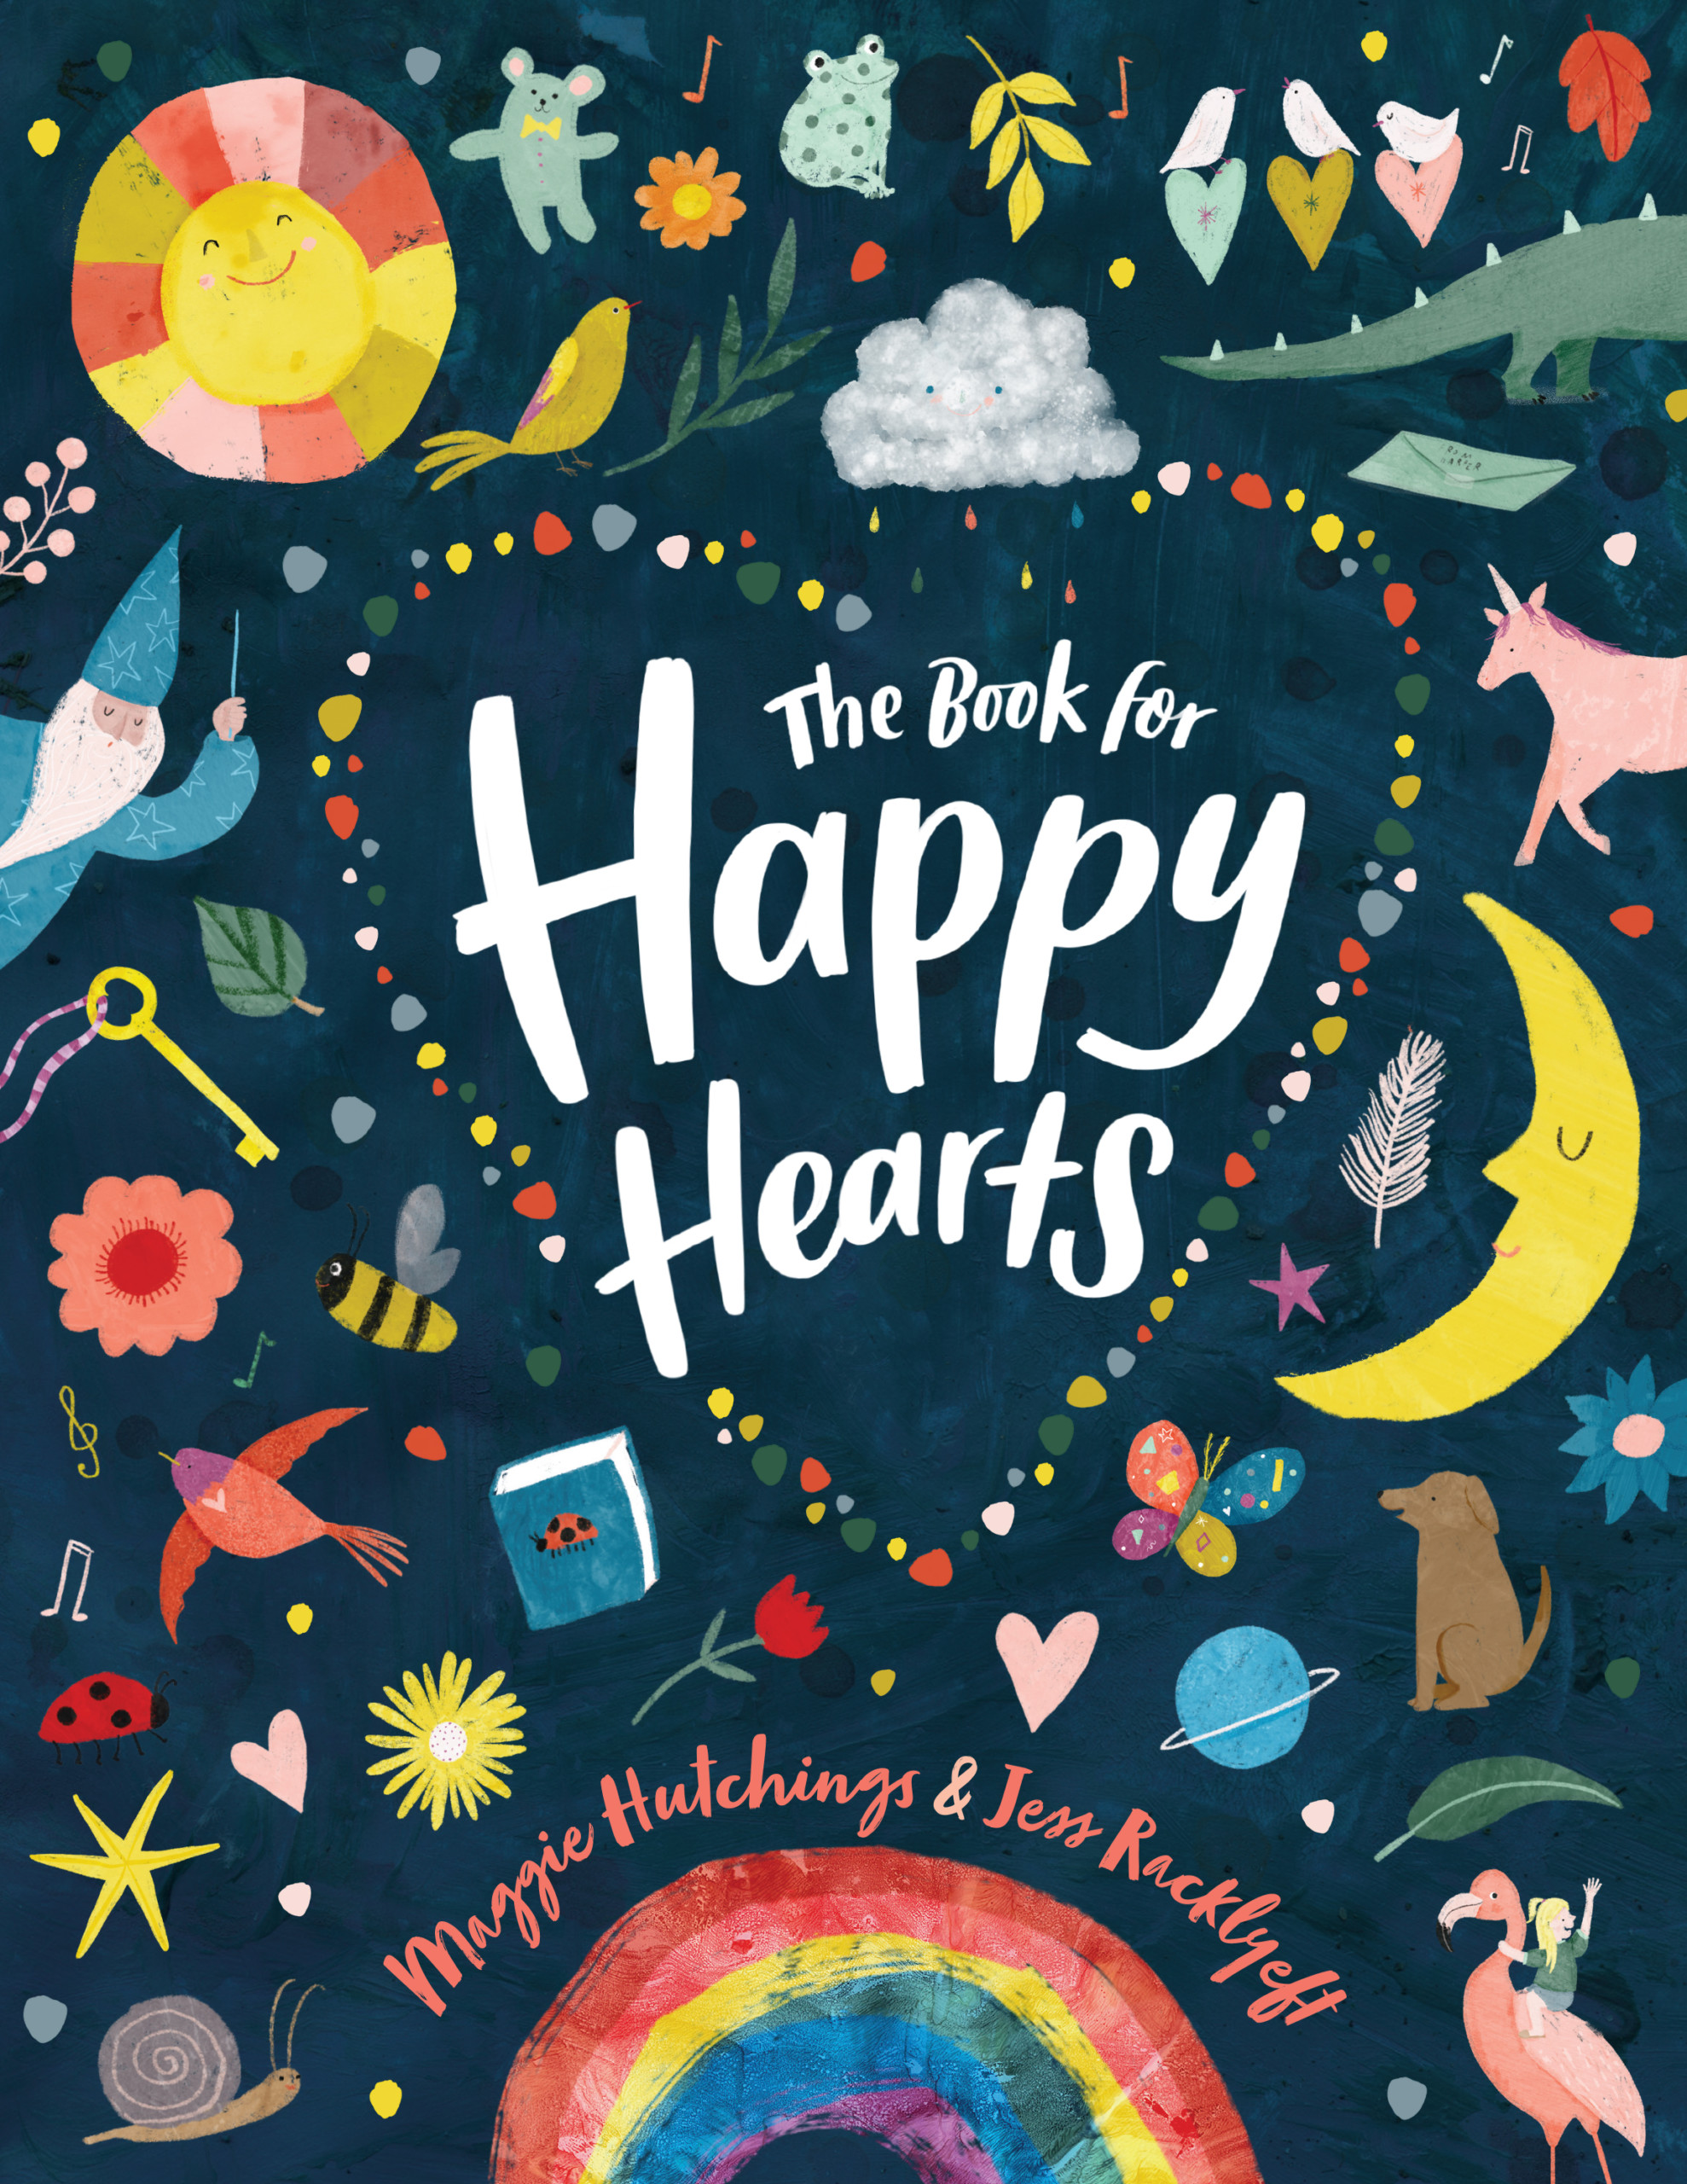 The Book for Happy Hearts